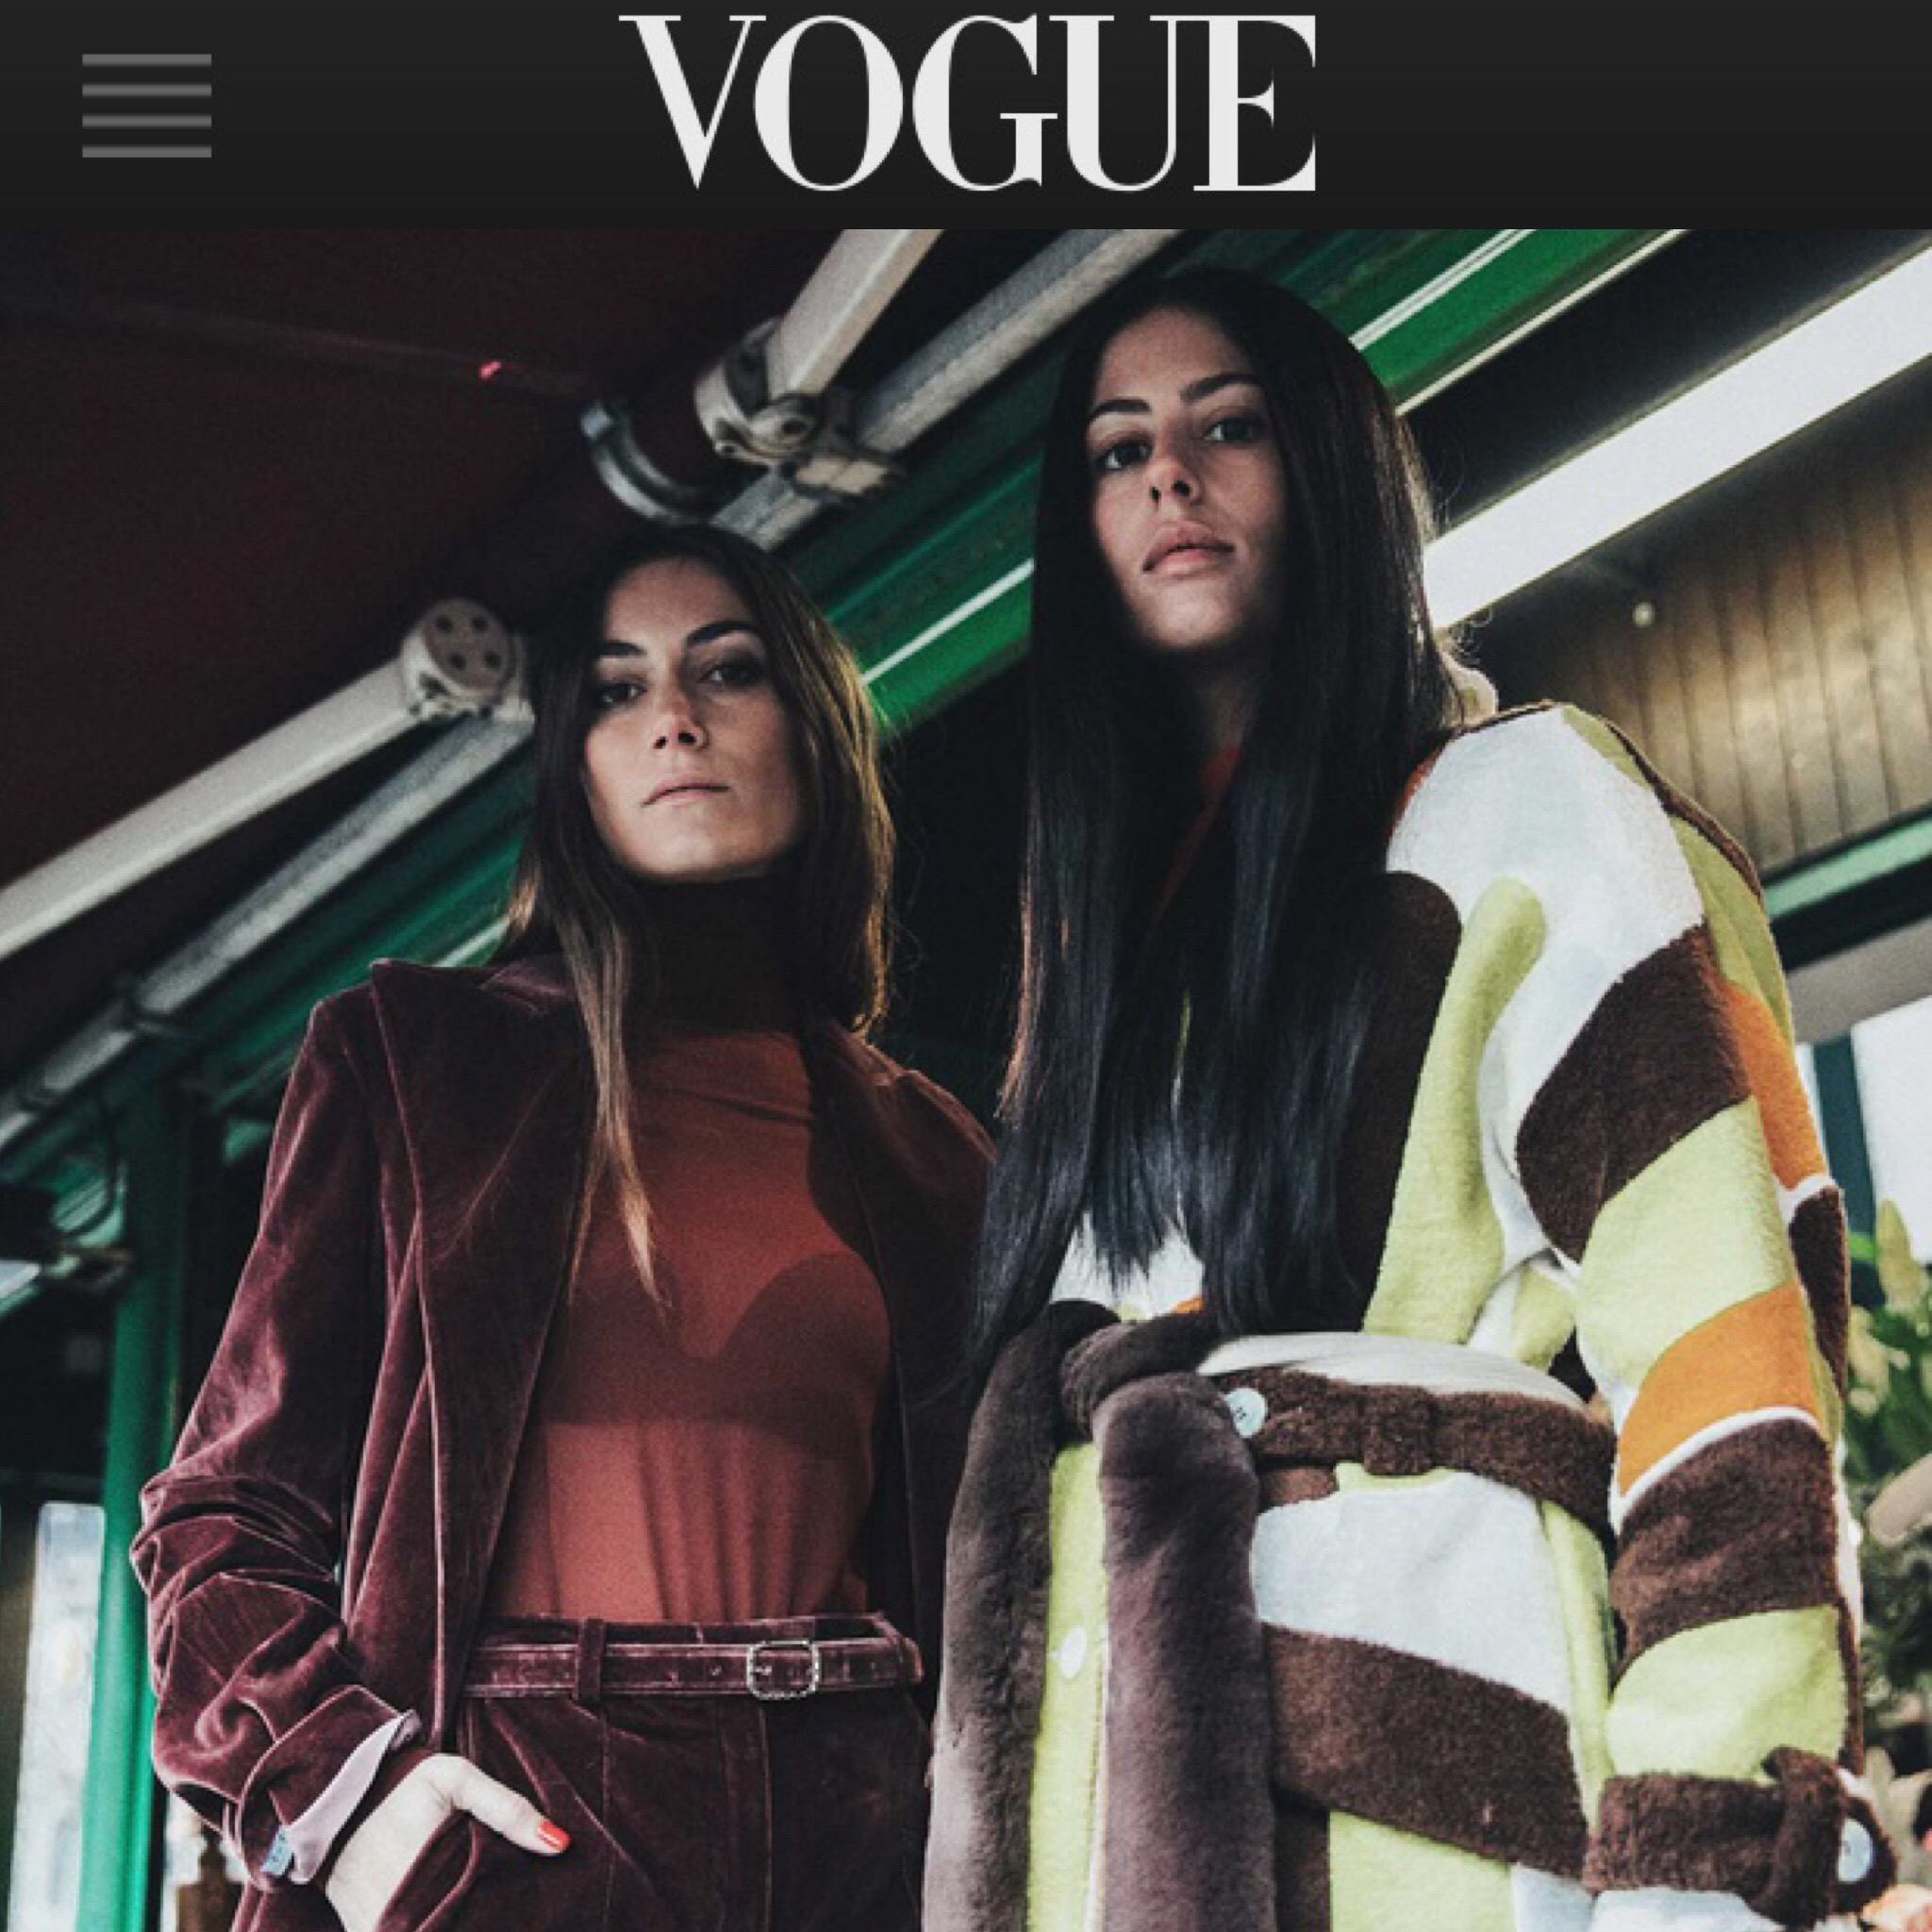 Vogue 7-Day Feature